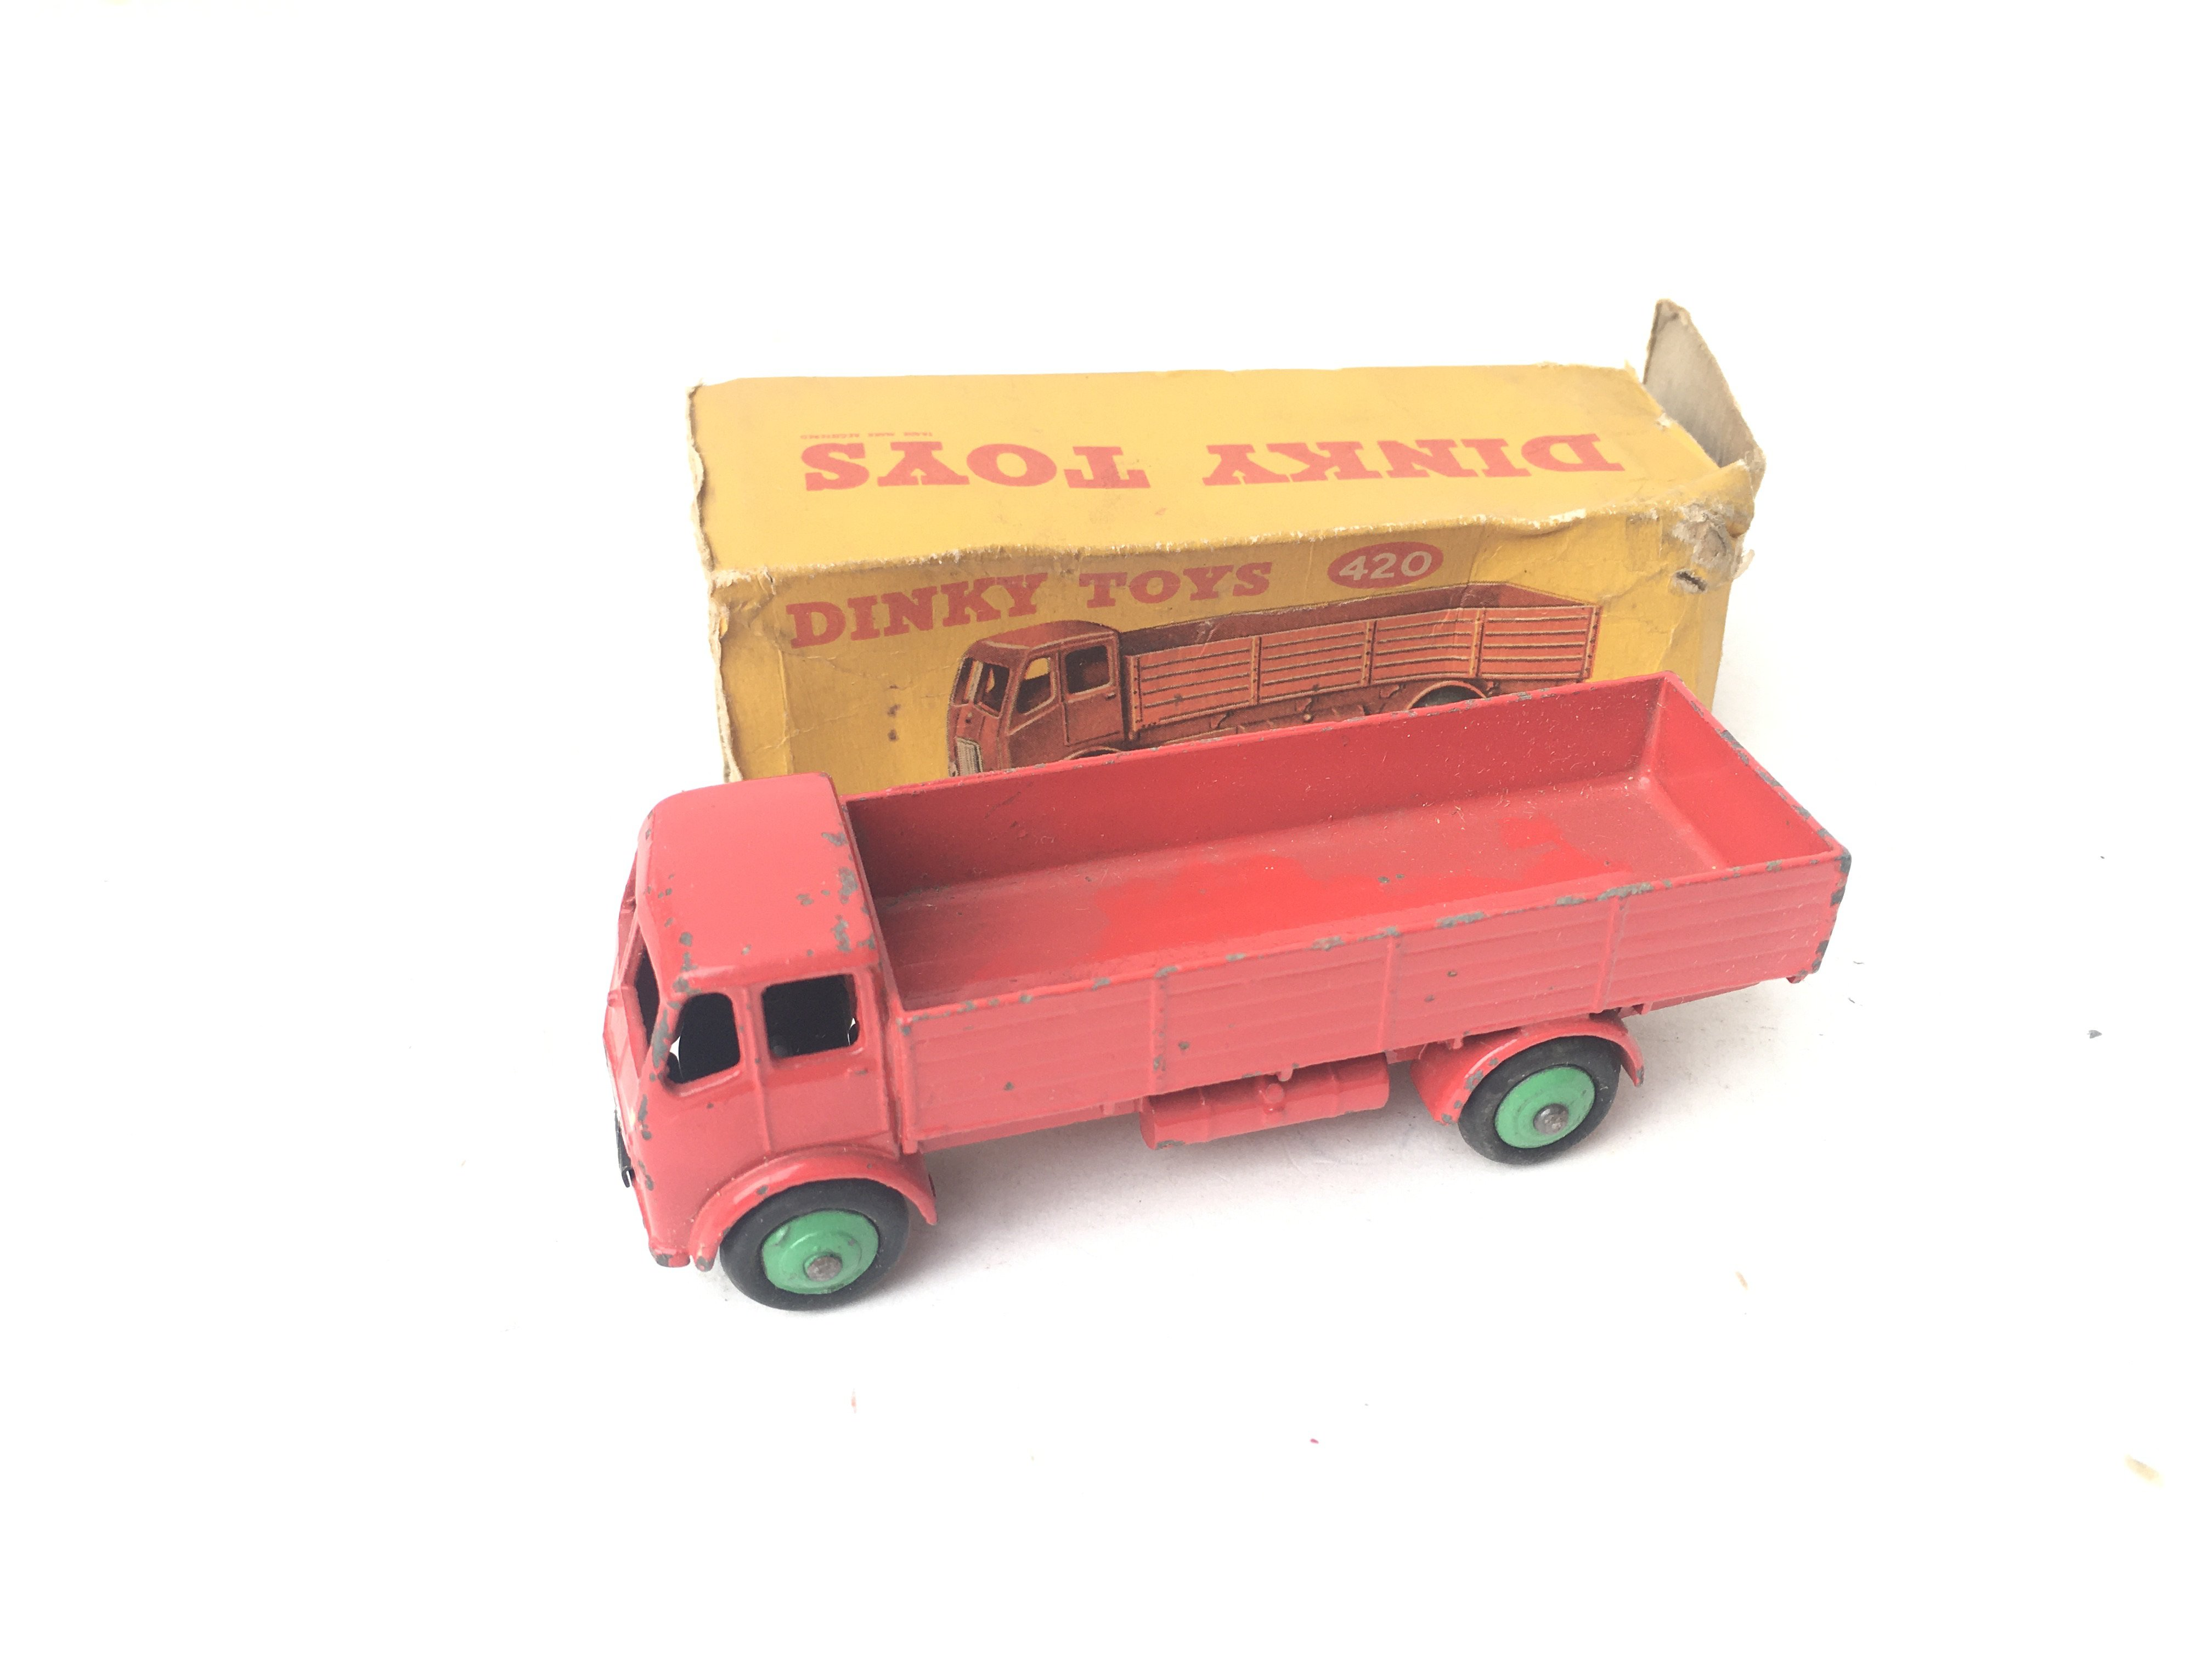 4 X Boxed Dinky Toys including Forward Control Lor - Image 2 of 4